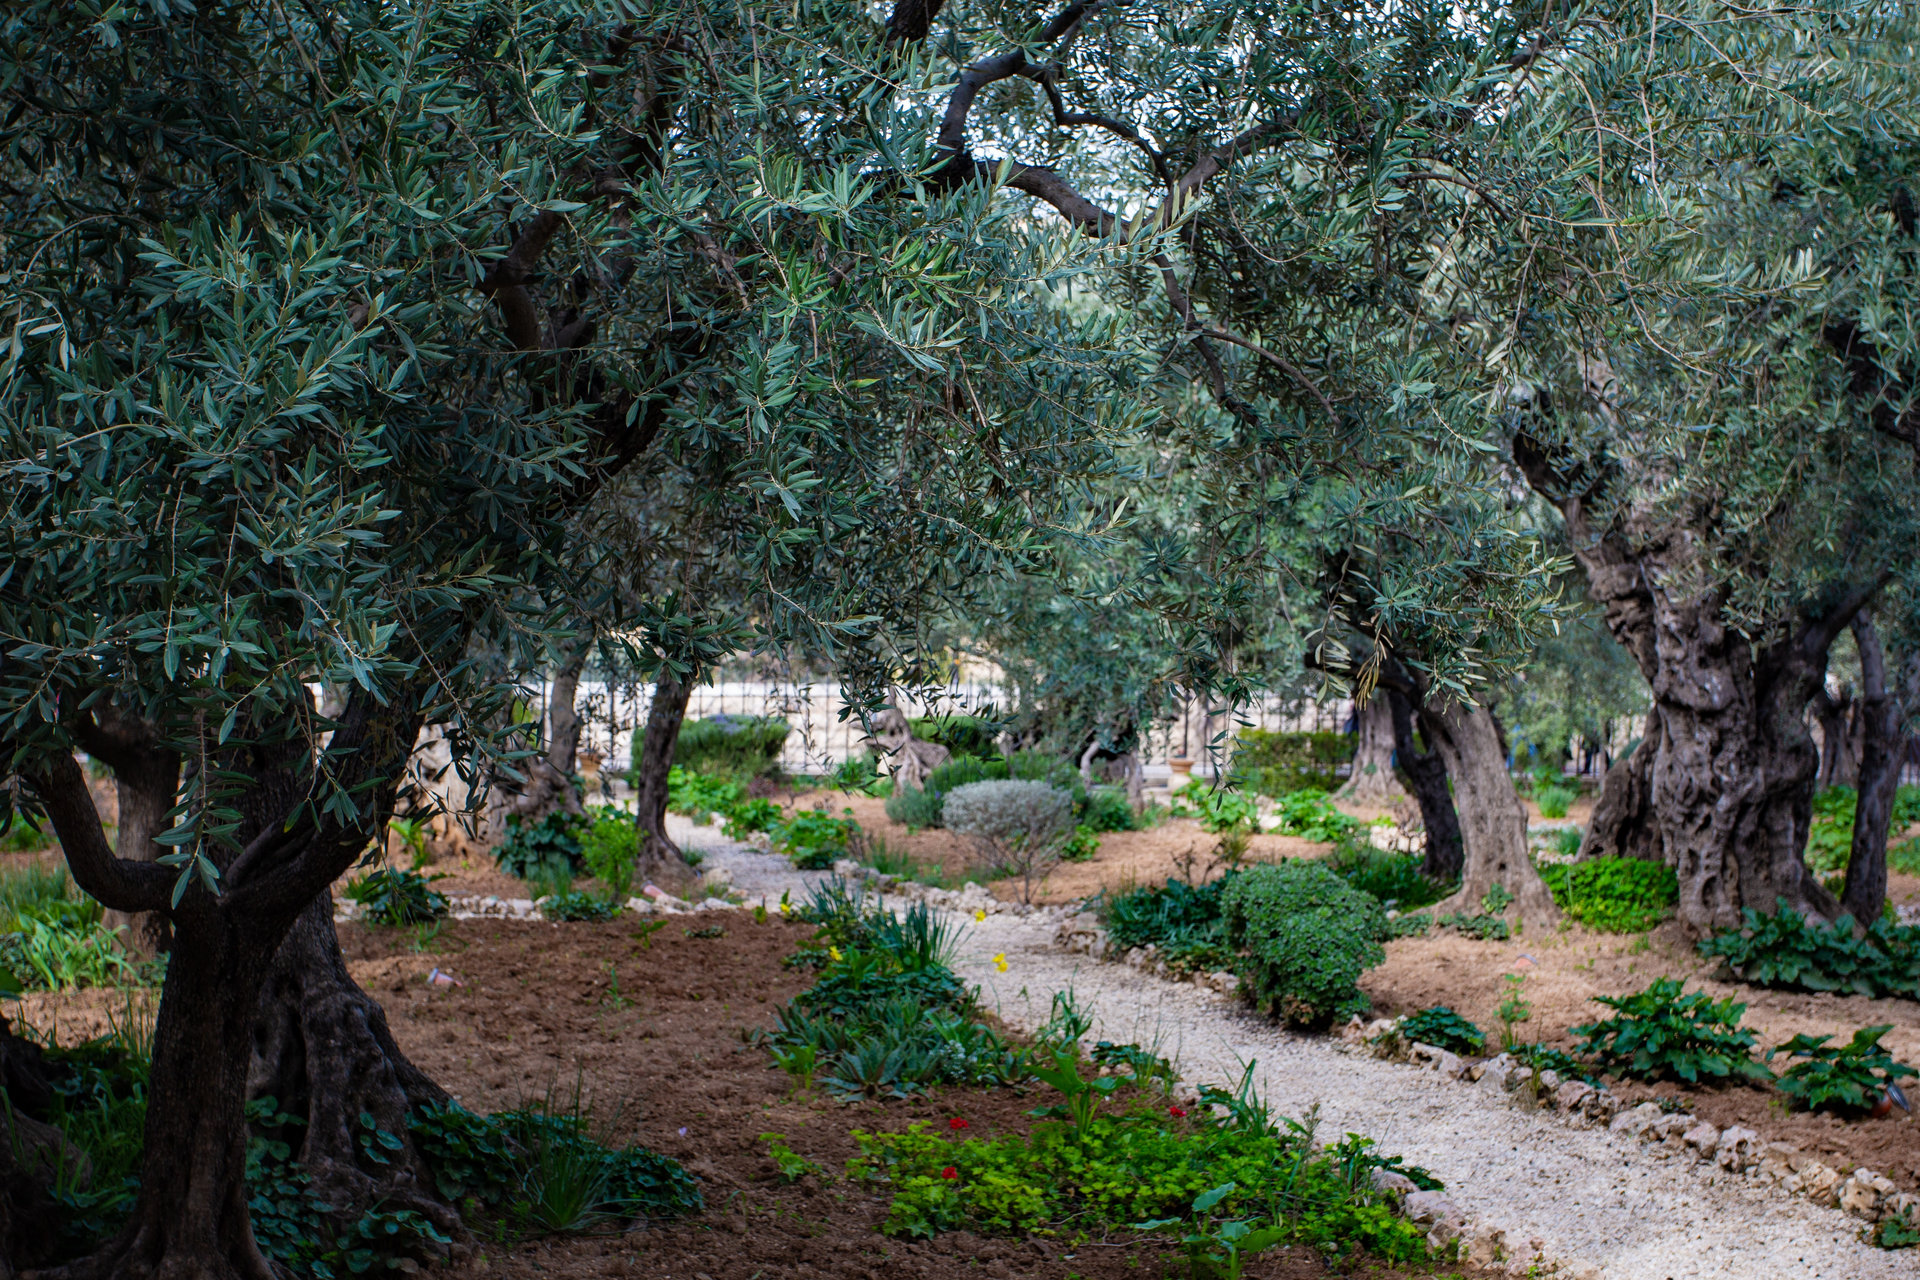 Discussing Jesus' Prayer in the Garden of Gethsemane — From The Garden To The Cross